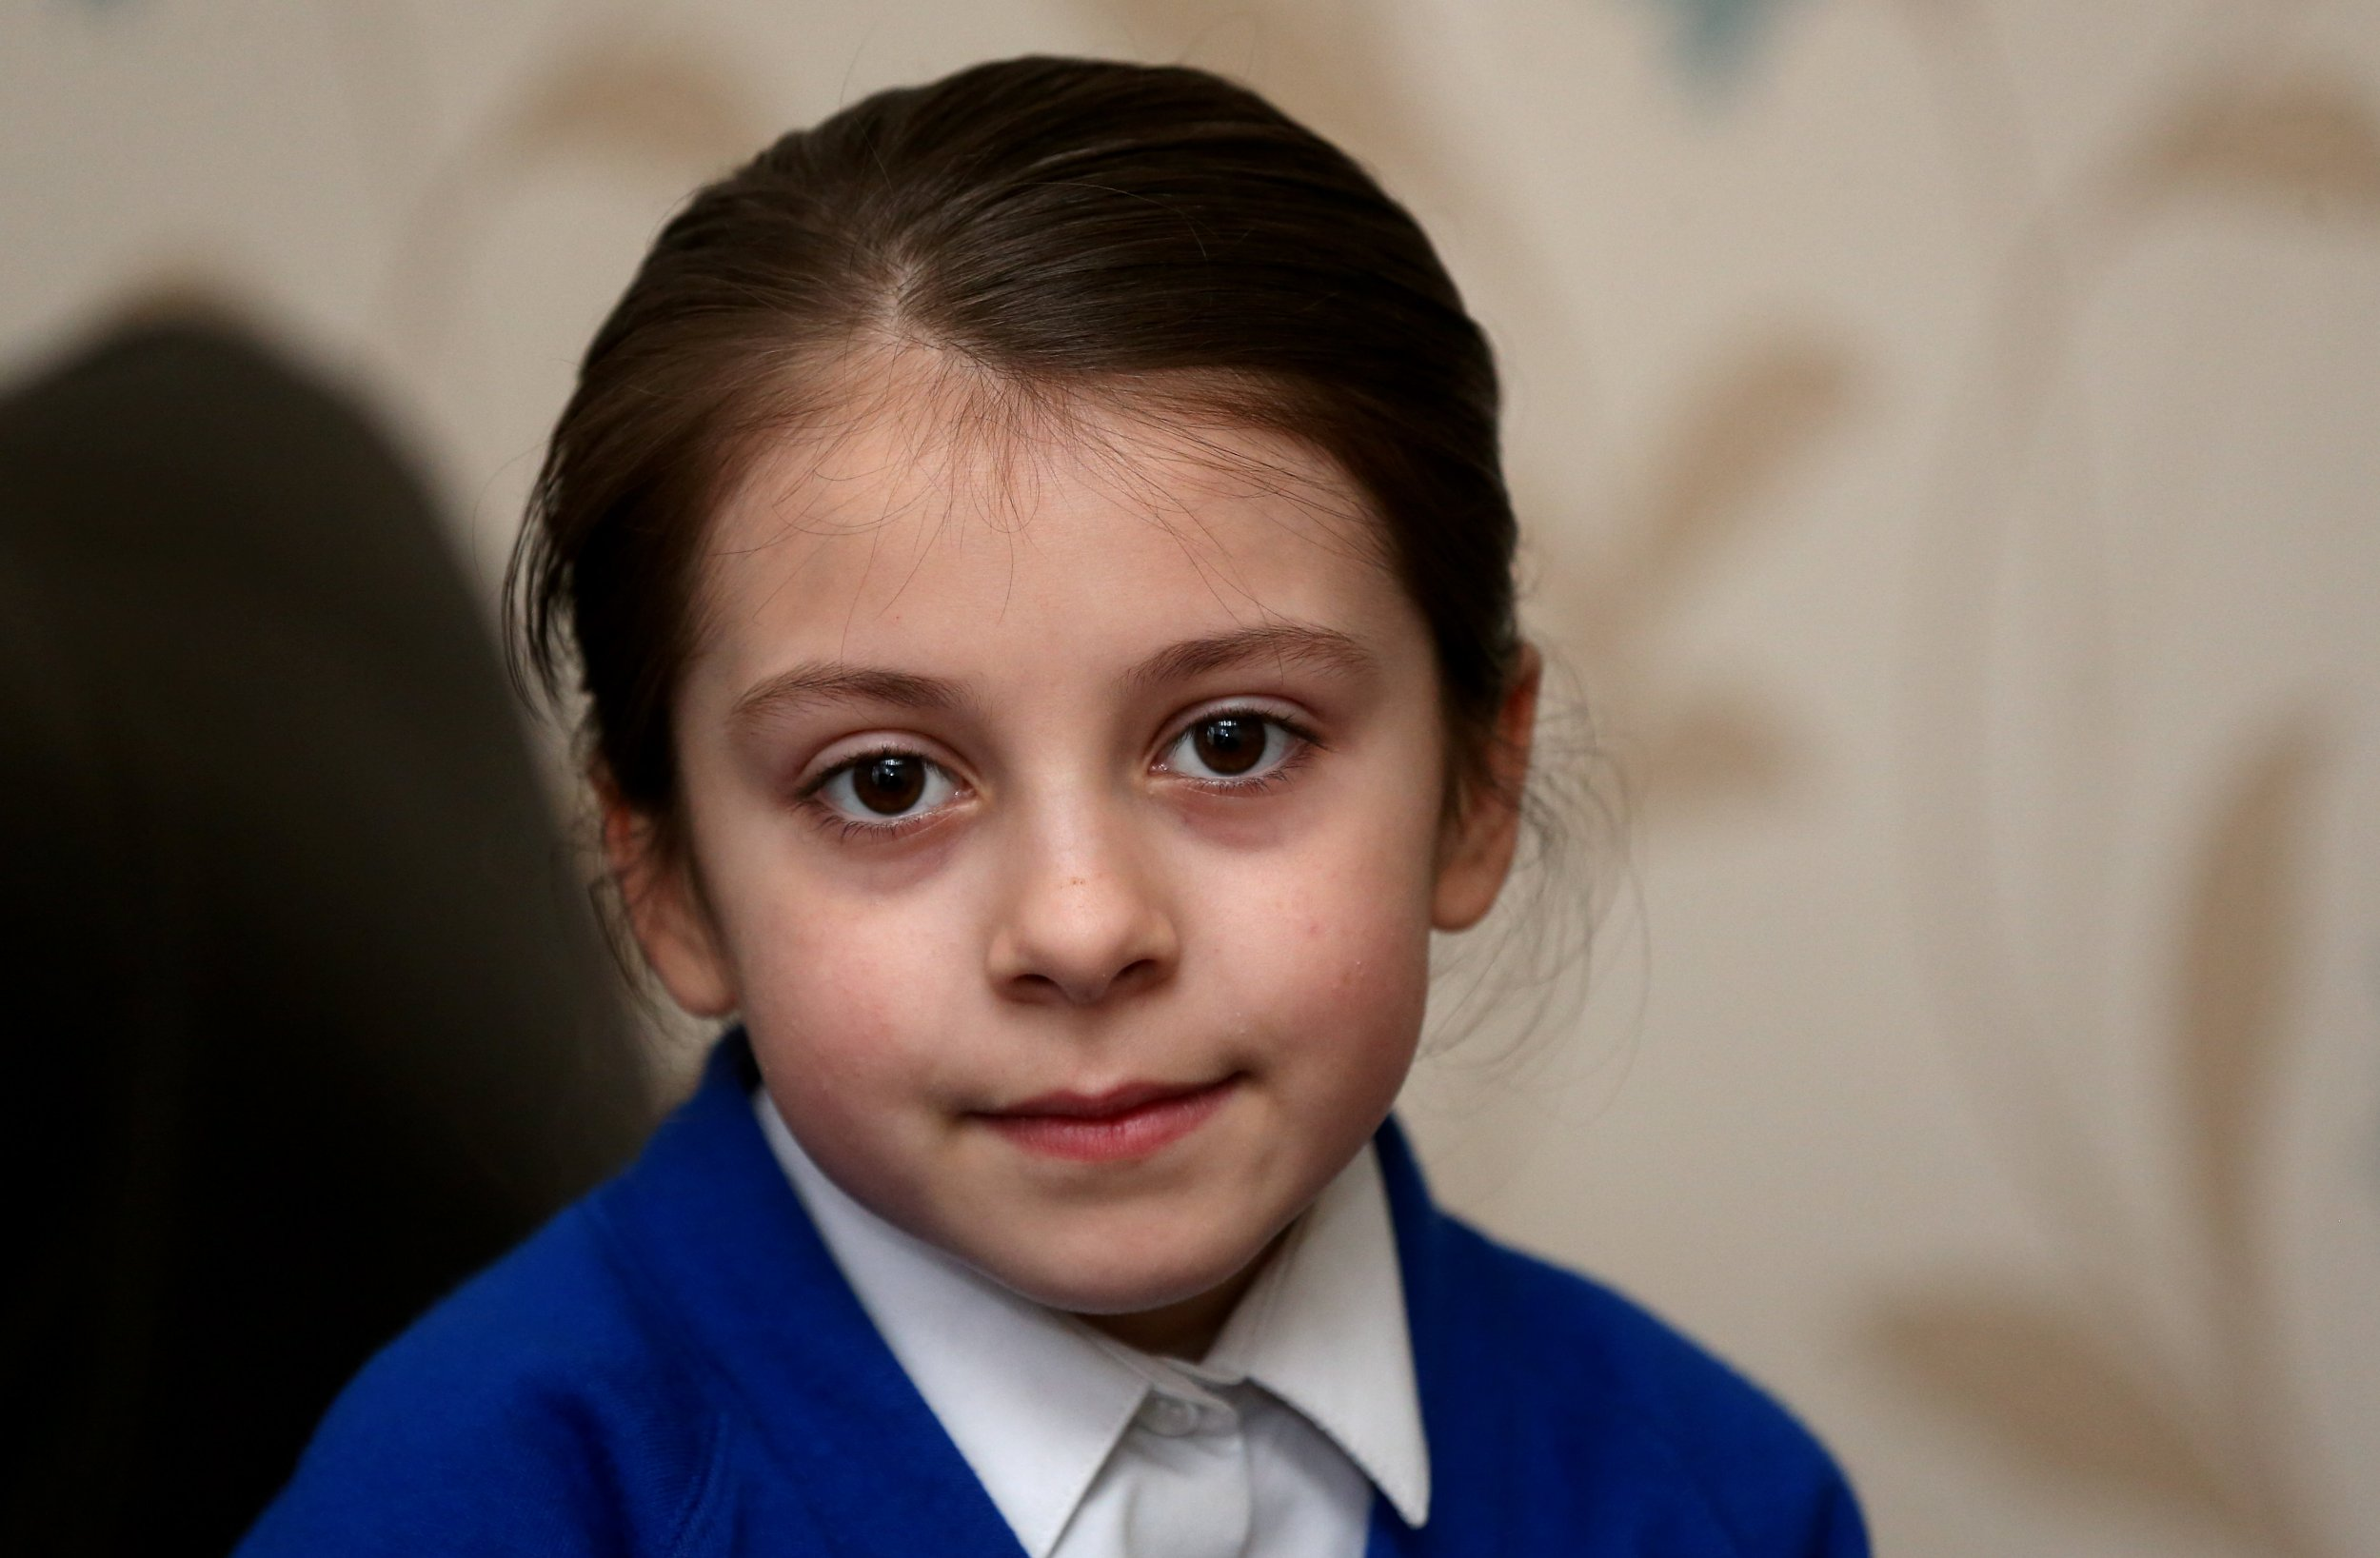 Ruby-Mai Bell, 9 who was accidentally given methadone by pharmacist. See NTI copy NTIMETH: Police and NHS England have launched an investigation after a nine-year-old girl nearly died when a bungling pharmacist gave her METHADONE instead of antibiotics. Little Ruby-Mai Bell had to be rushed to hospital after she was given a dose of the powerful drug which is usually used to treat heroin addiction. Her mum Donna Buckley, 36, had taken her to their local GP who prescribed her antibiotics for a water infection on Tuesday (7/2). But when they went to pick it up at Manor Pharmacy in The Meadows, Nottingham, they were accidentally given someone else's medication.